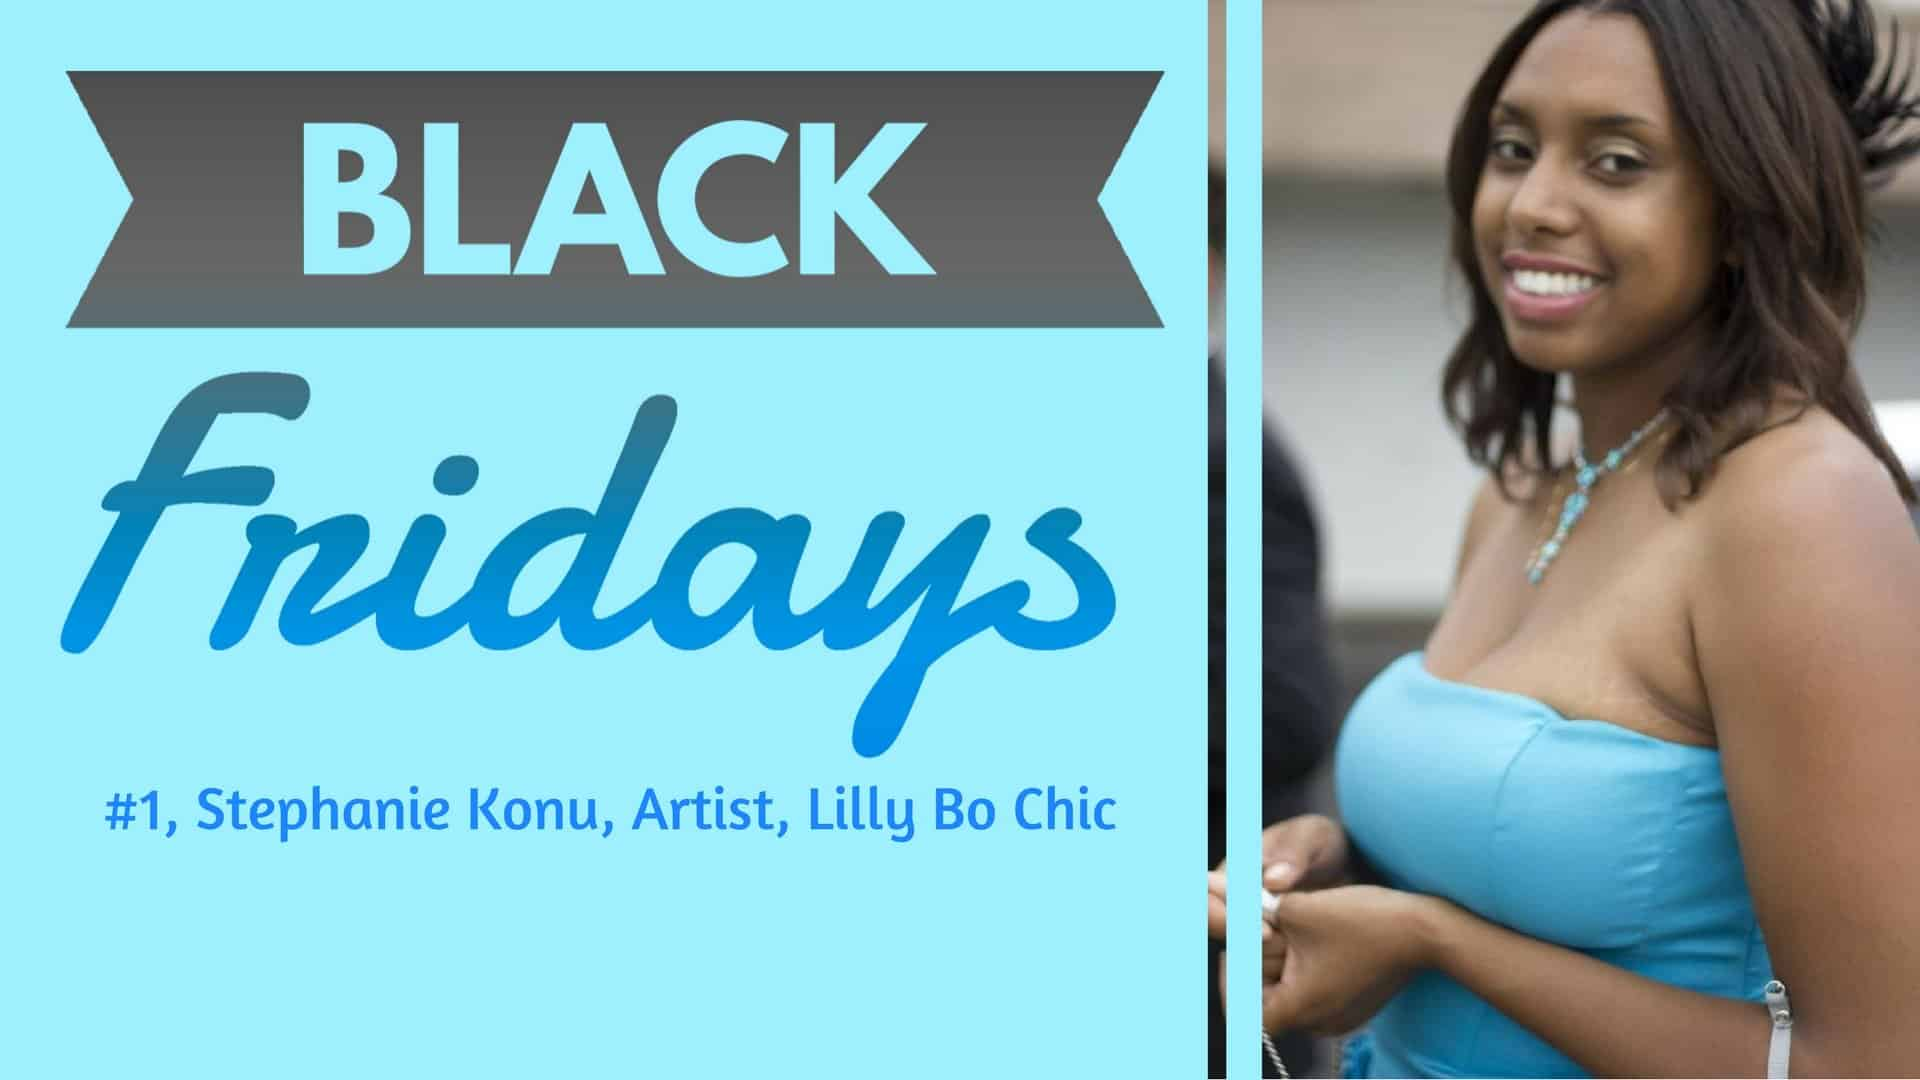 Black Fridays — #1, Stephanie Konu, Artist, Lilly Bo Chic (Featured Image)